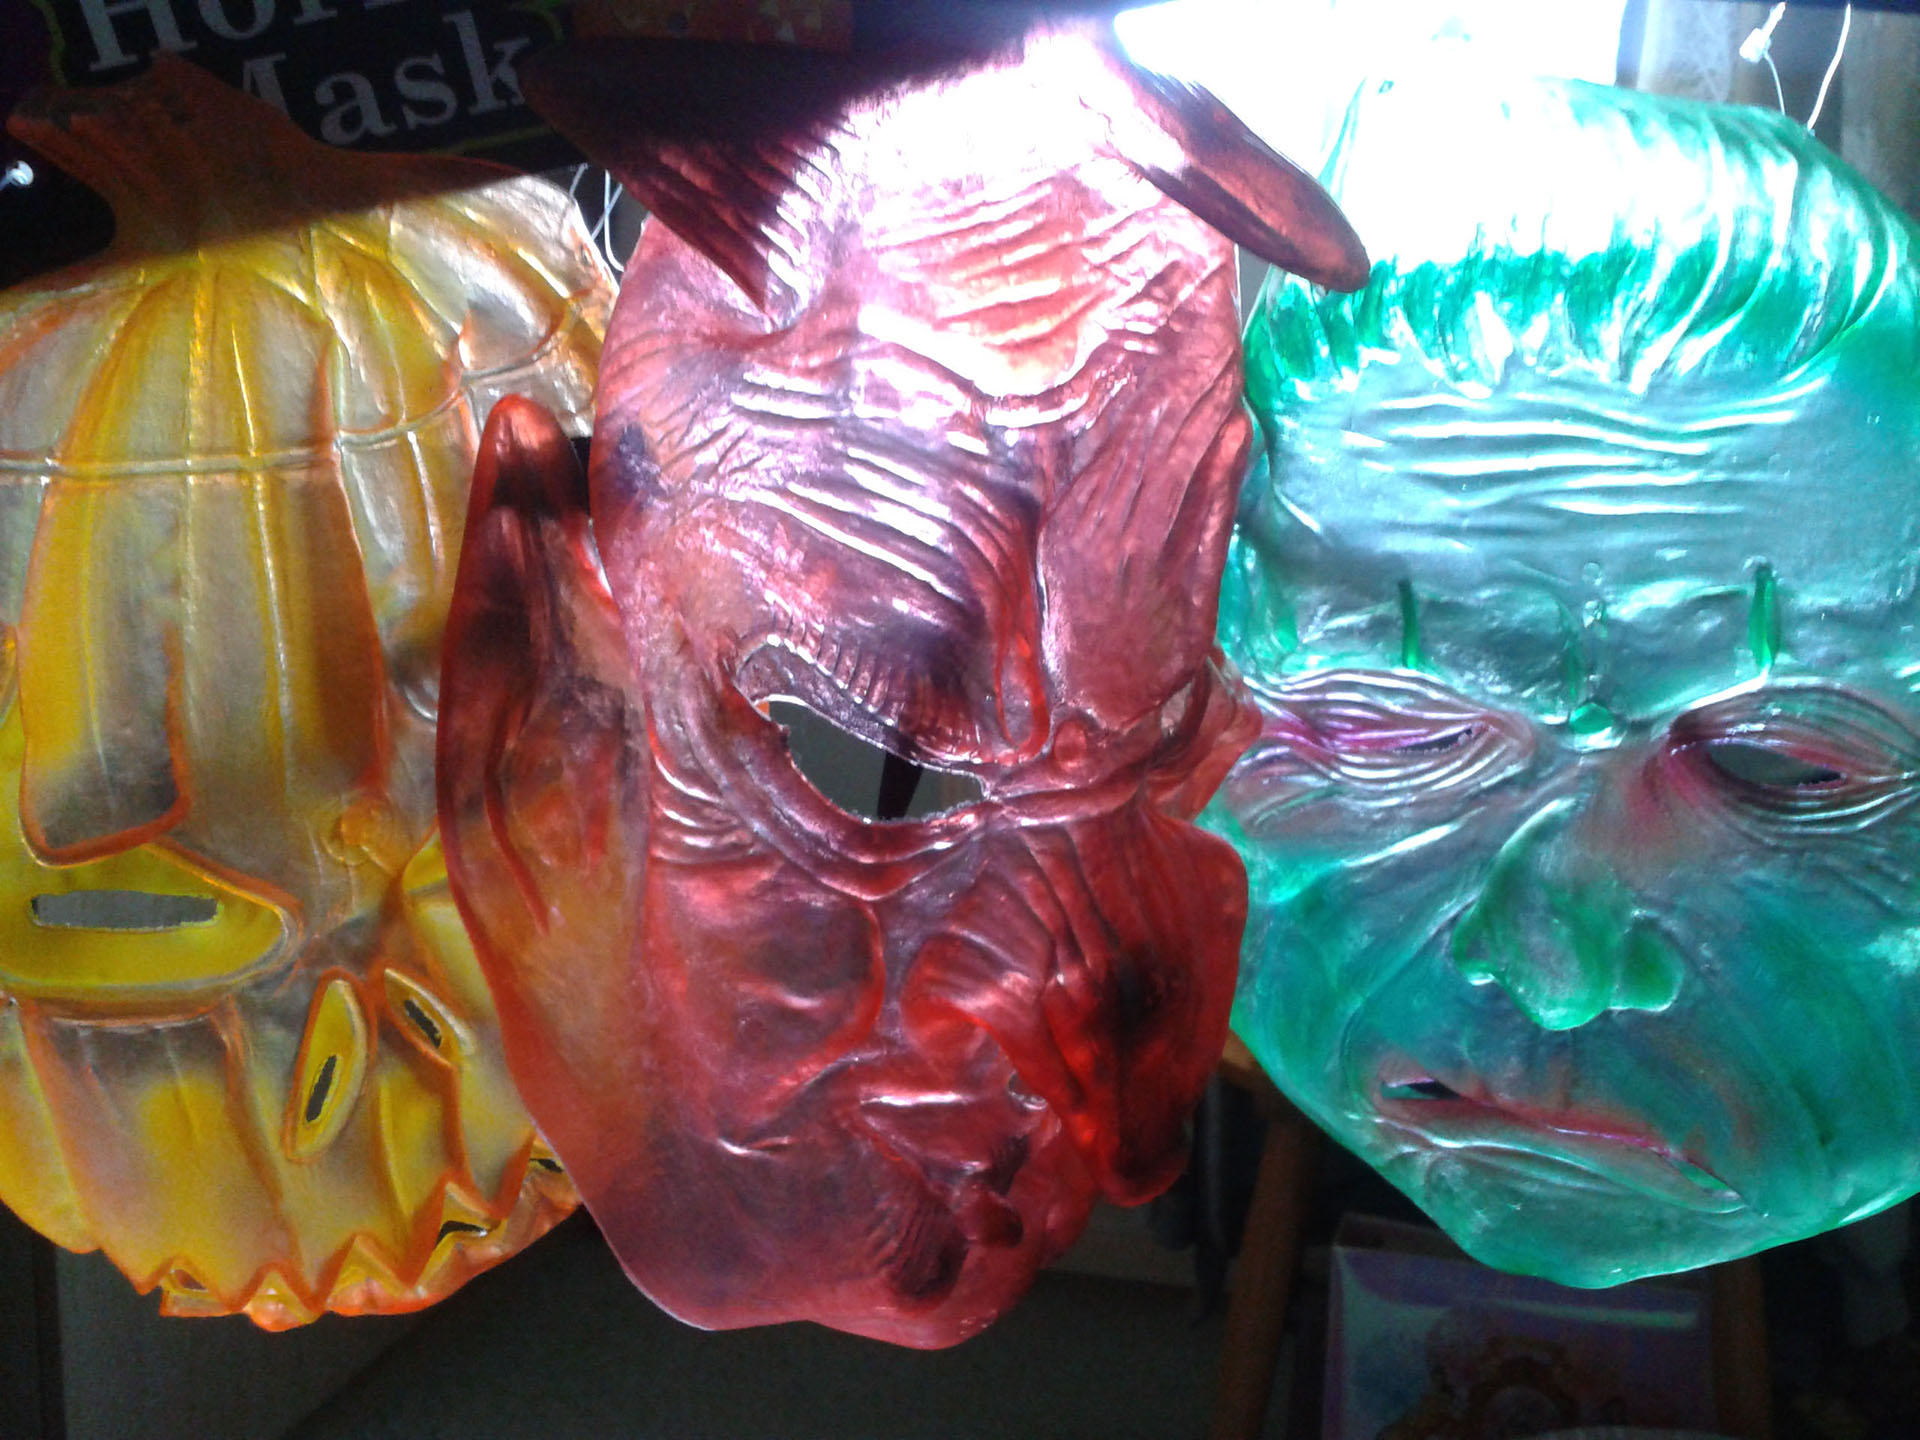 Transparent Halloween Masks In Sunlight